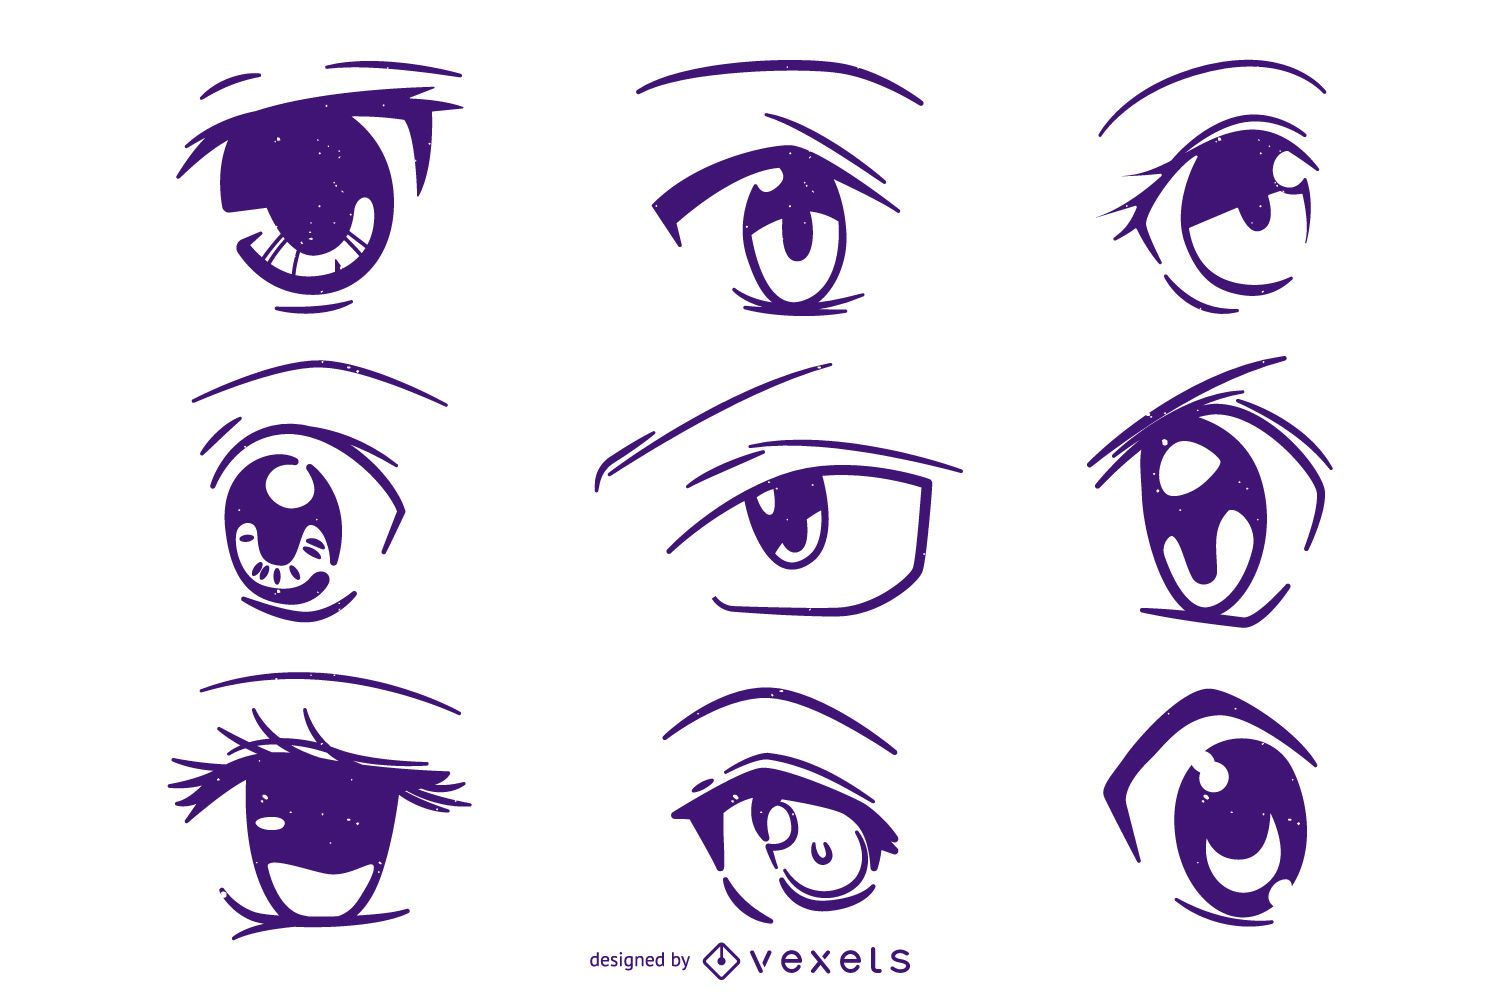 Mill svg cut file $ 0.00. Anime Vector Graphics To Download